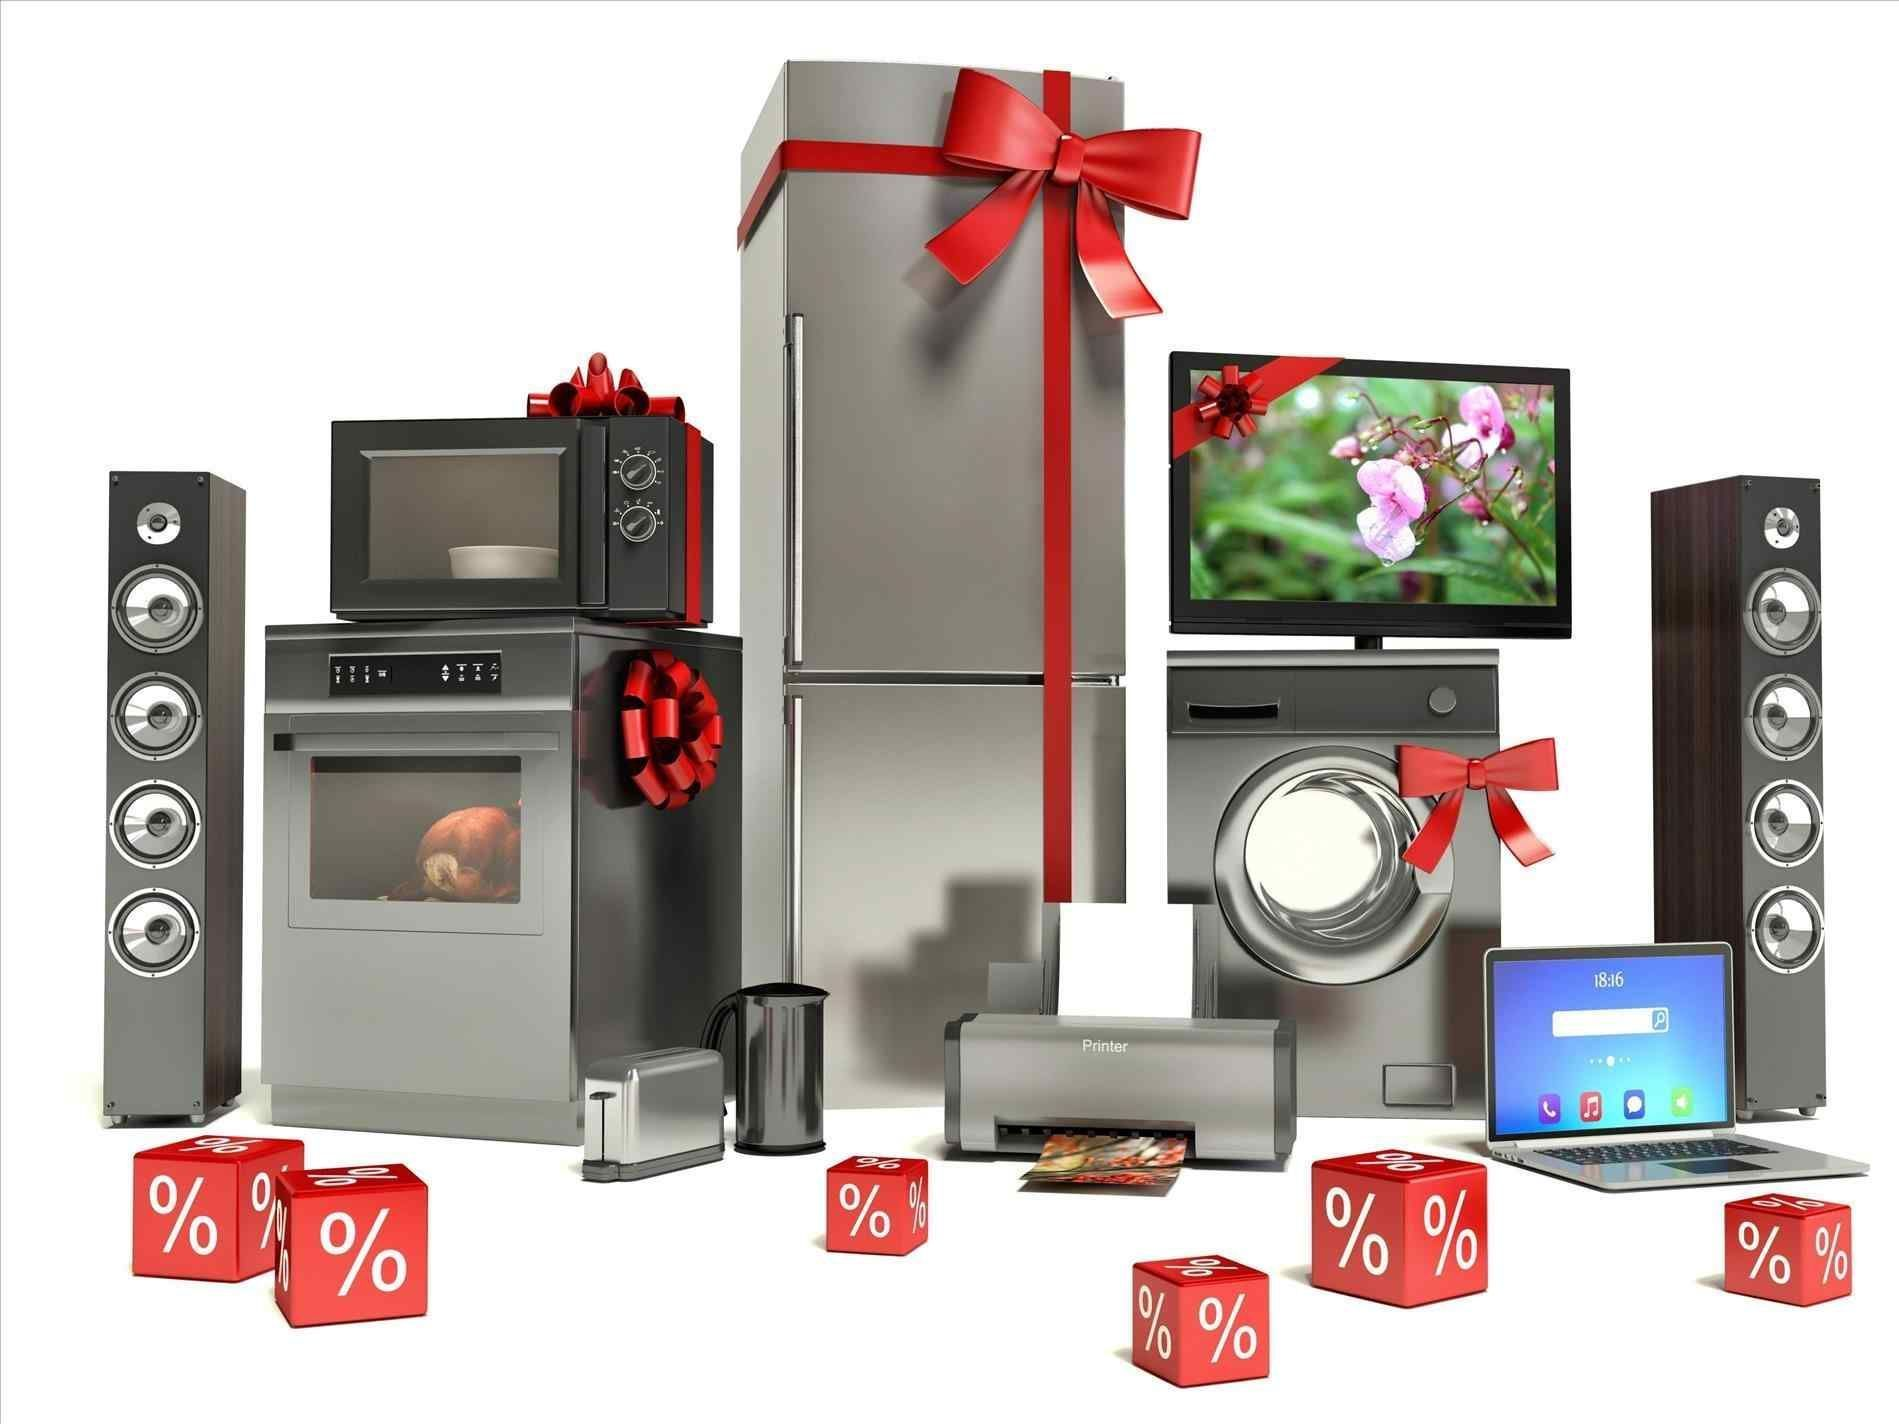 New home appliances banner hd at xx16.info # ...